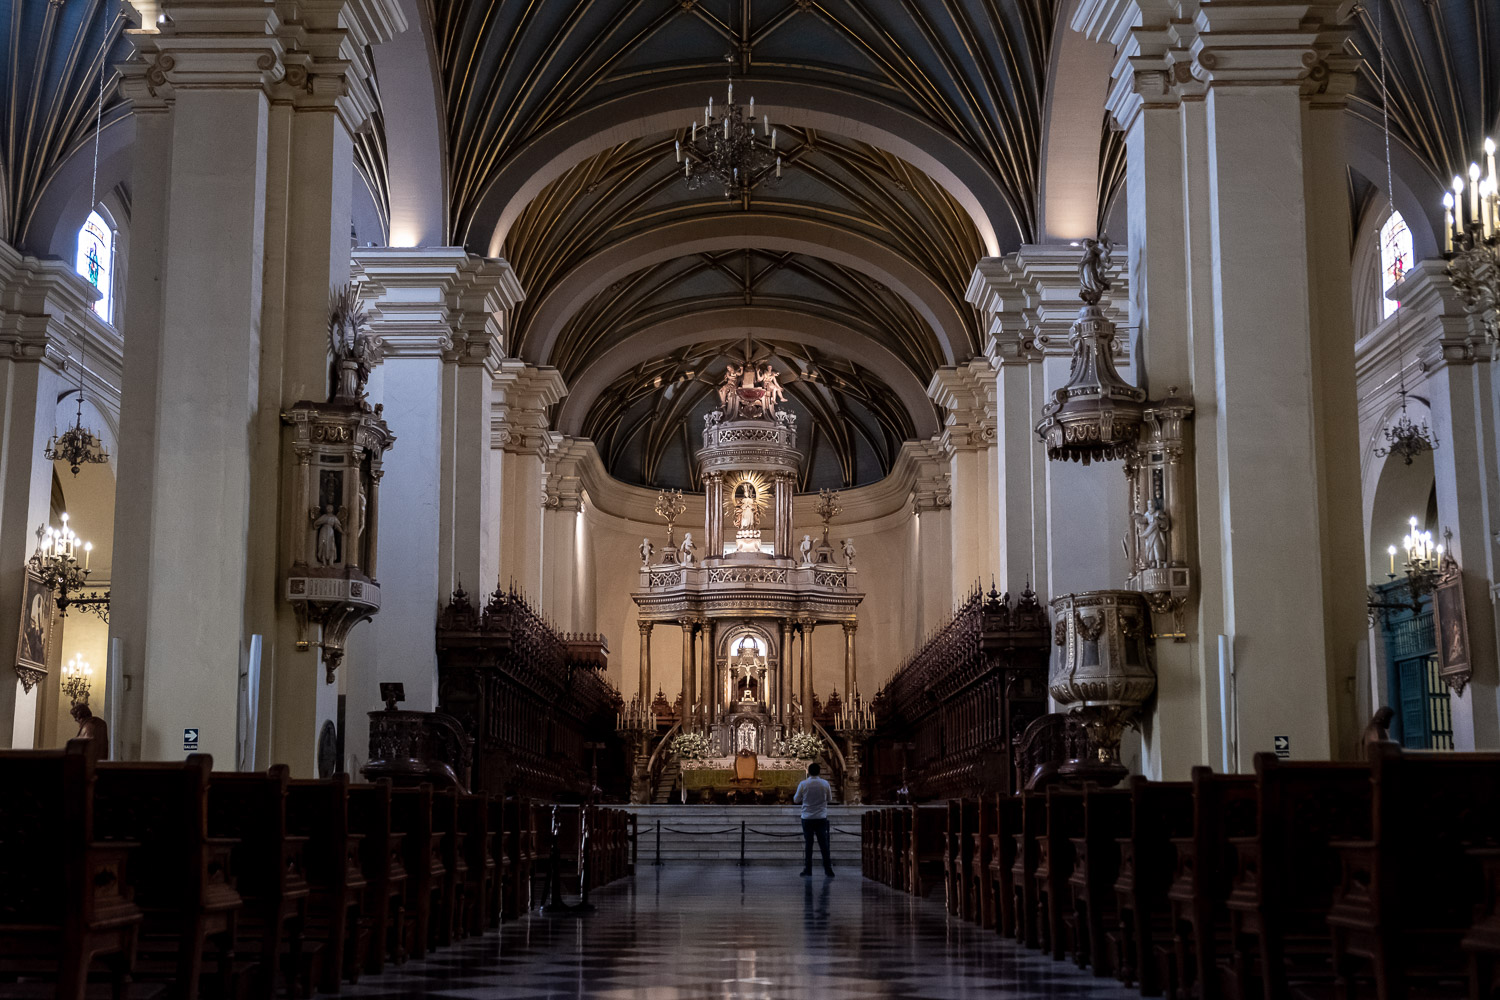 """Inside the Basilica Cathedral of Lima, Peru. Travel photography and guide by © Natasha Lequepeys for """"And Then I Met Yoko"""". #photoblog #travelblog #travelperu"""